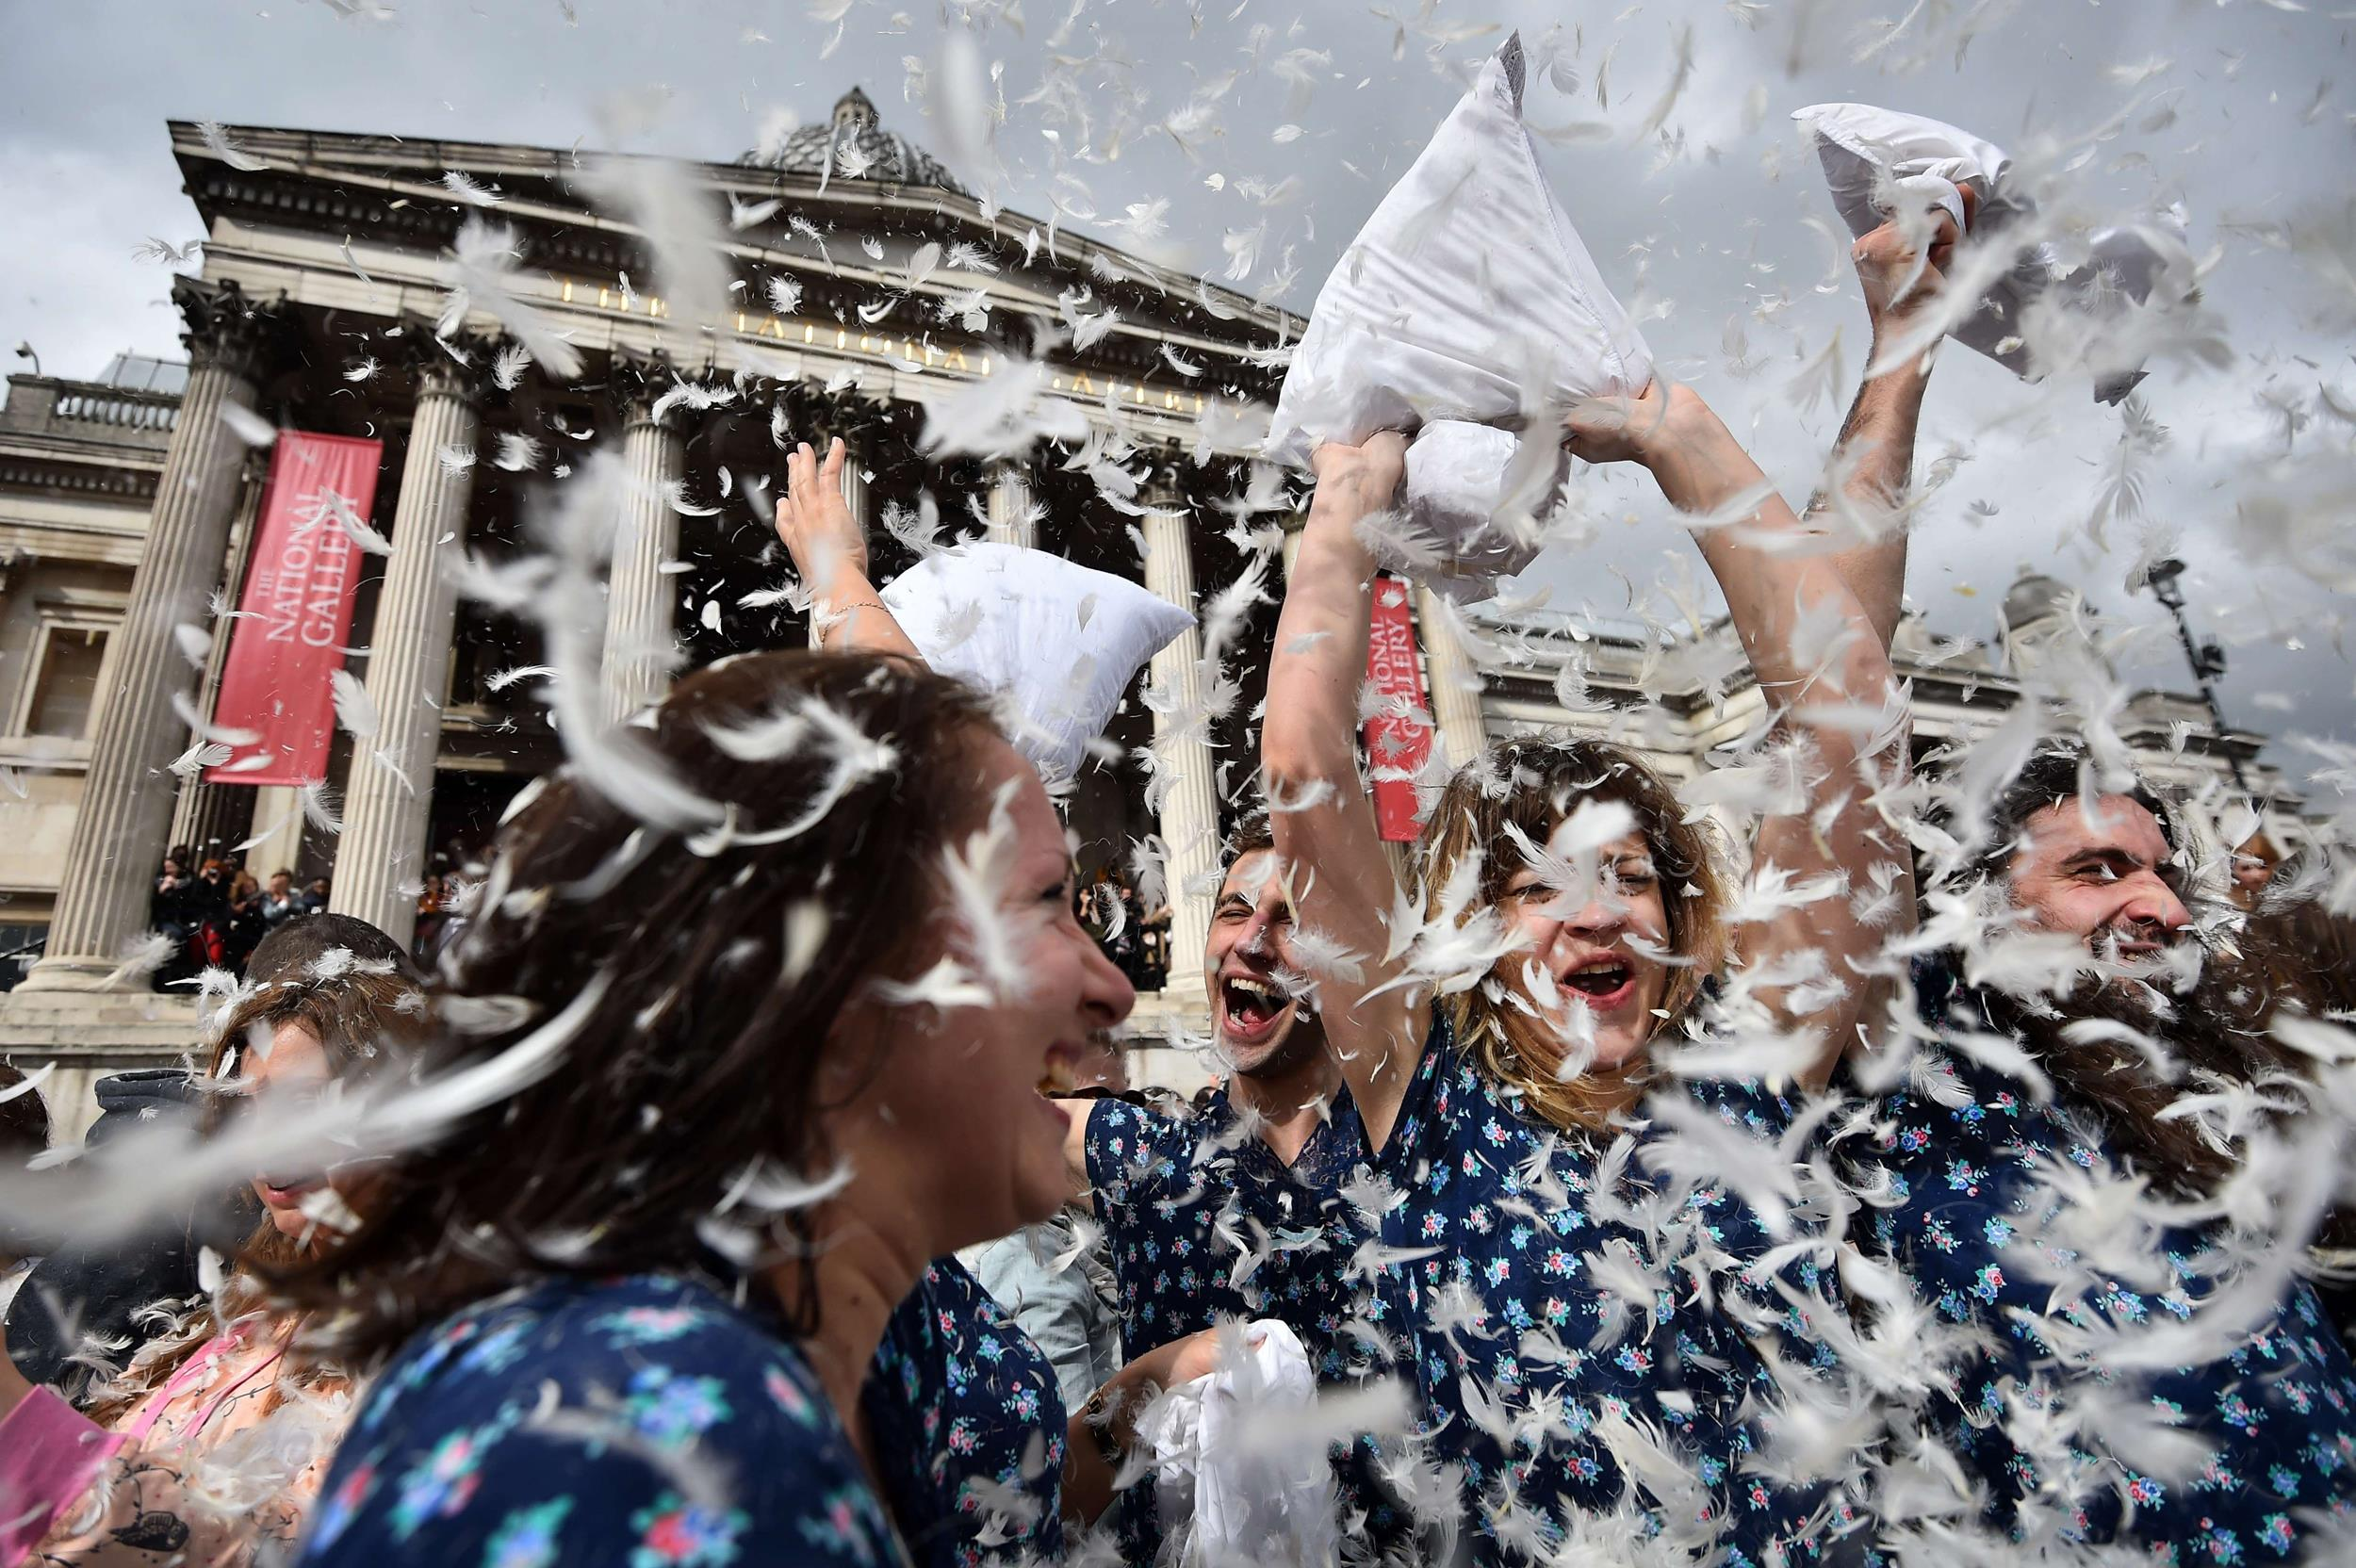 Image: TOPSHOTS-BRITAIN-LIFESTYLE-OFFBEAT-PILLOW FIGHT